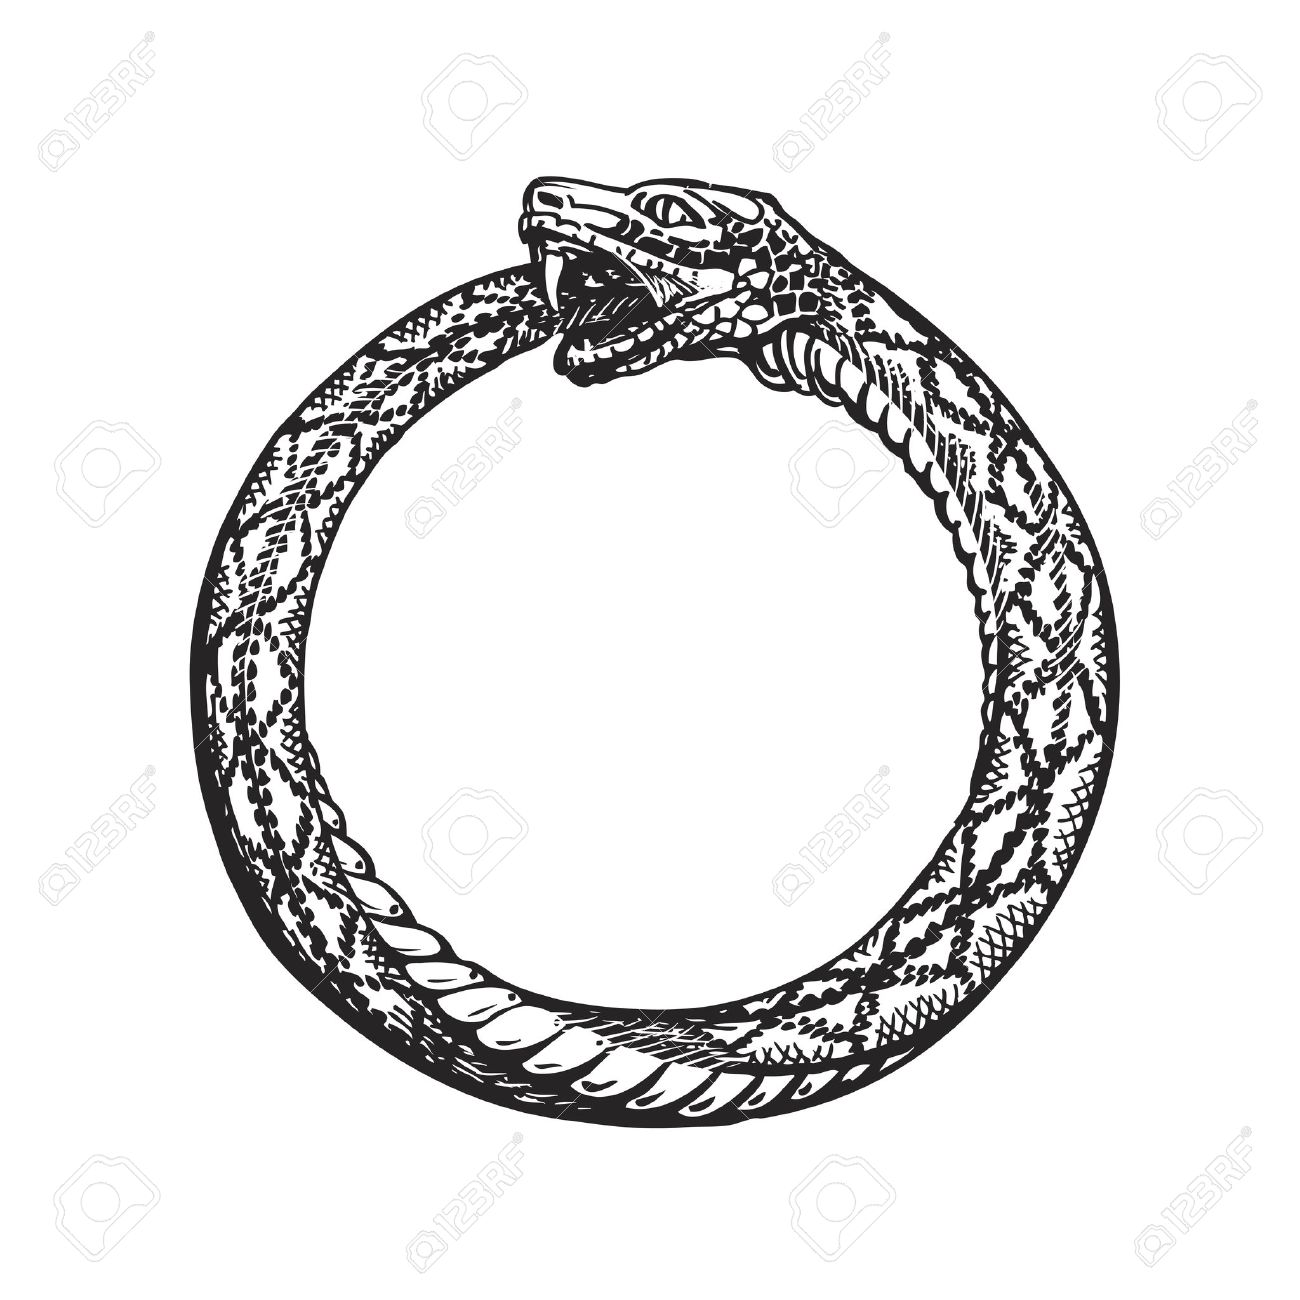 Comunismo Cristiano - Página 16 67209558-ouroboros-snake-eating-its-own-tail-eternity-or-infinity-symbol-isolated-on-white-background